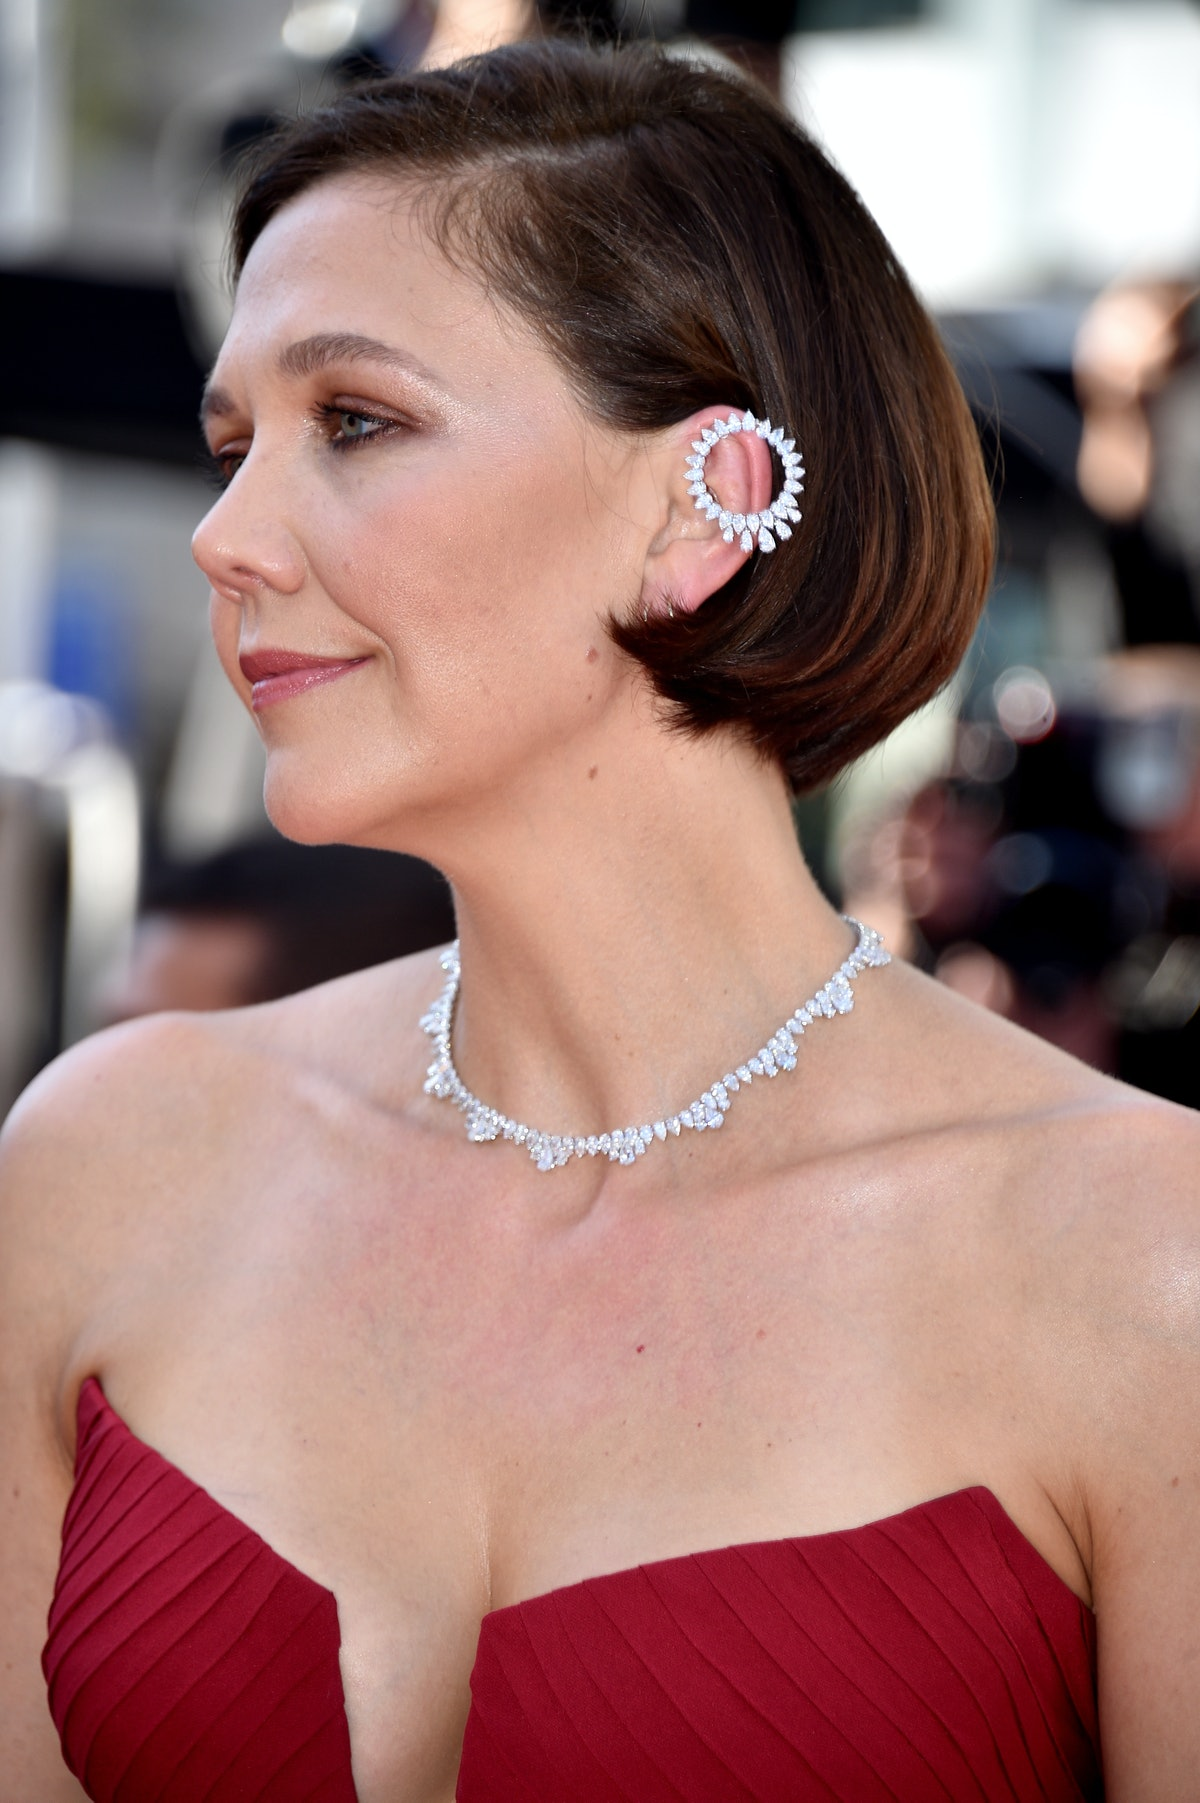 """CANNES, FRANCE - JULY 09: Actress Maggie Gyllenhaal attends the """"Benedetta"""" screening during the 74th annual Cannes Film Festival on July 09, 2021 in Cannes, France. (Photo by Lionel Hahn/Getty Images)"""